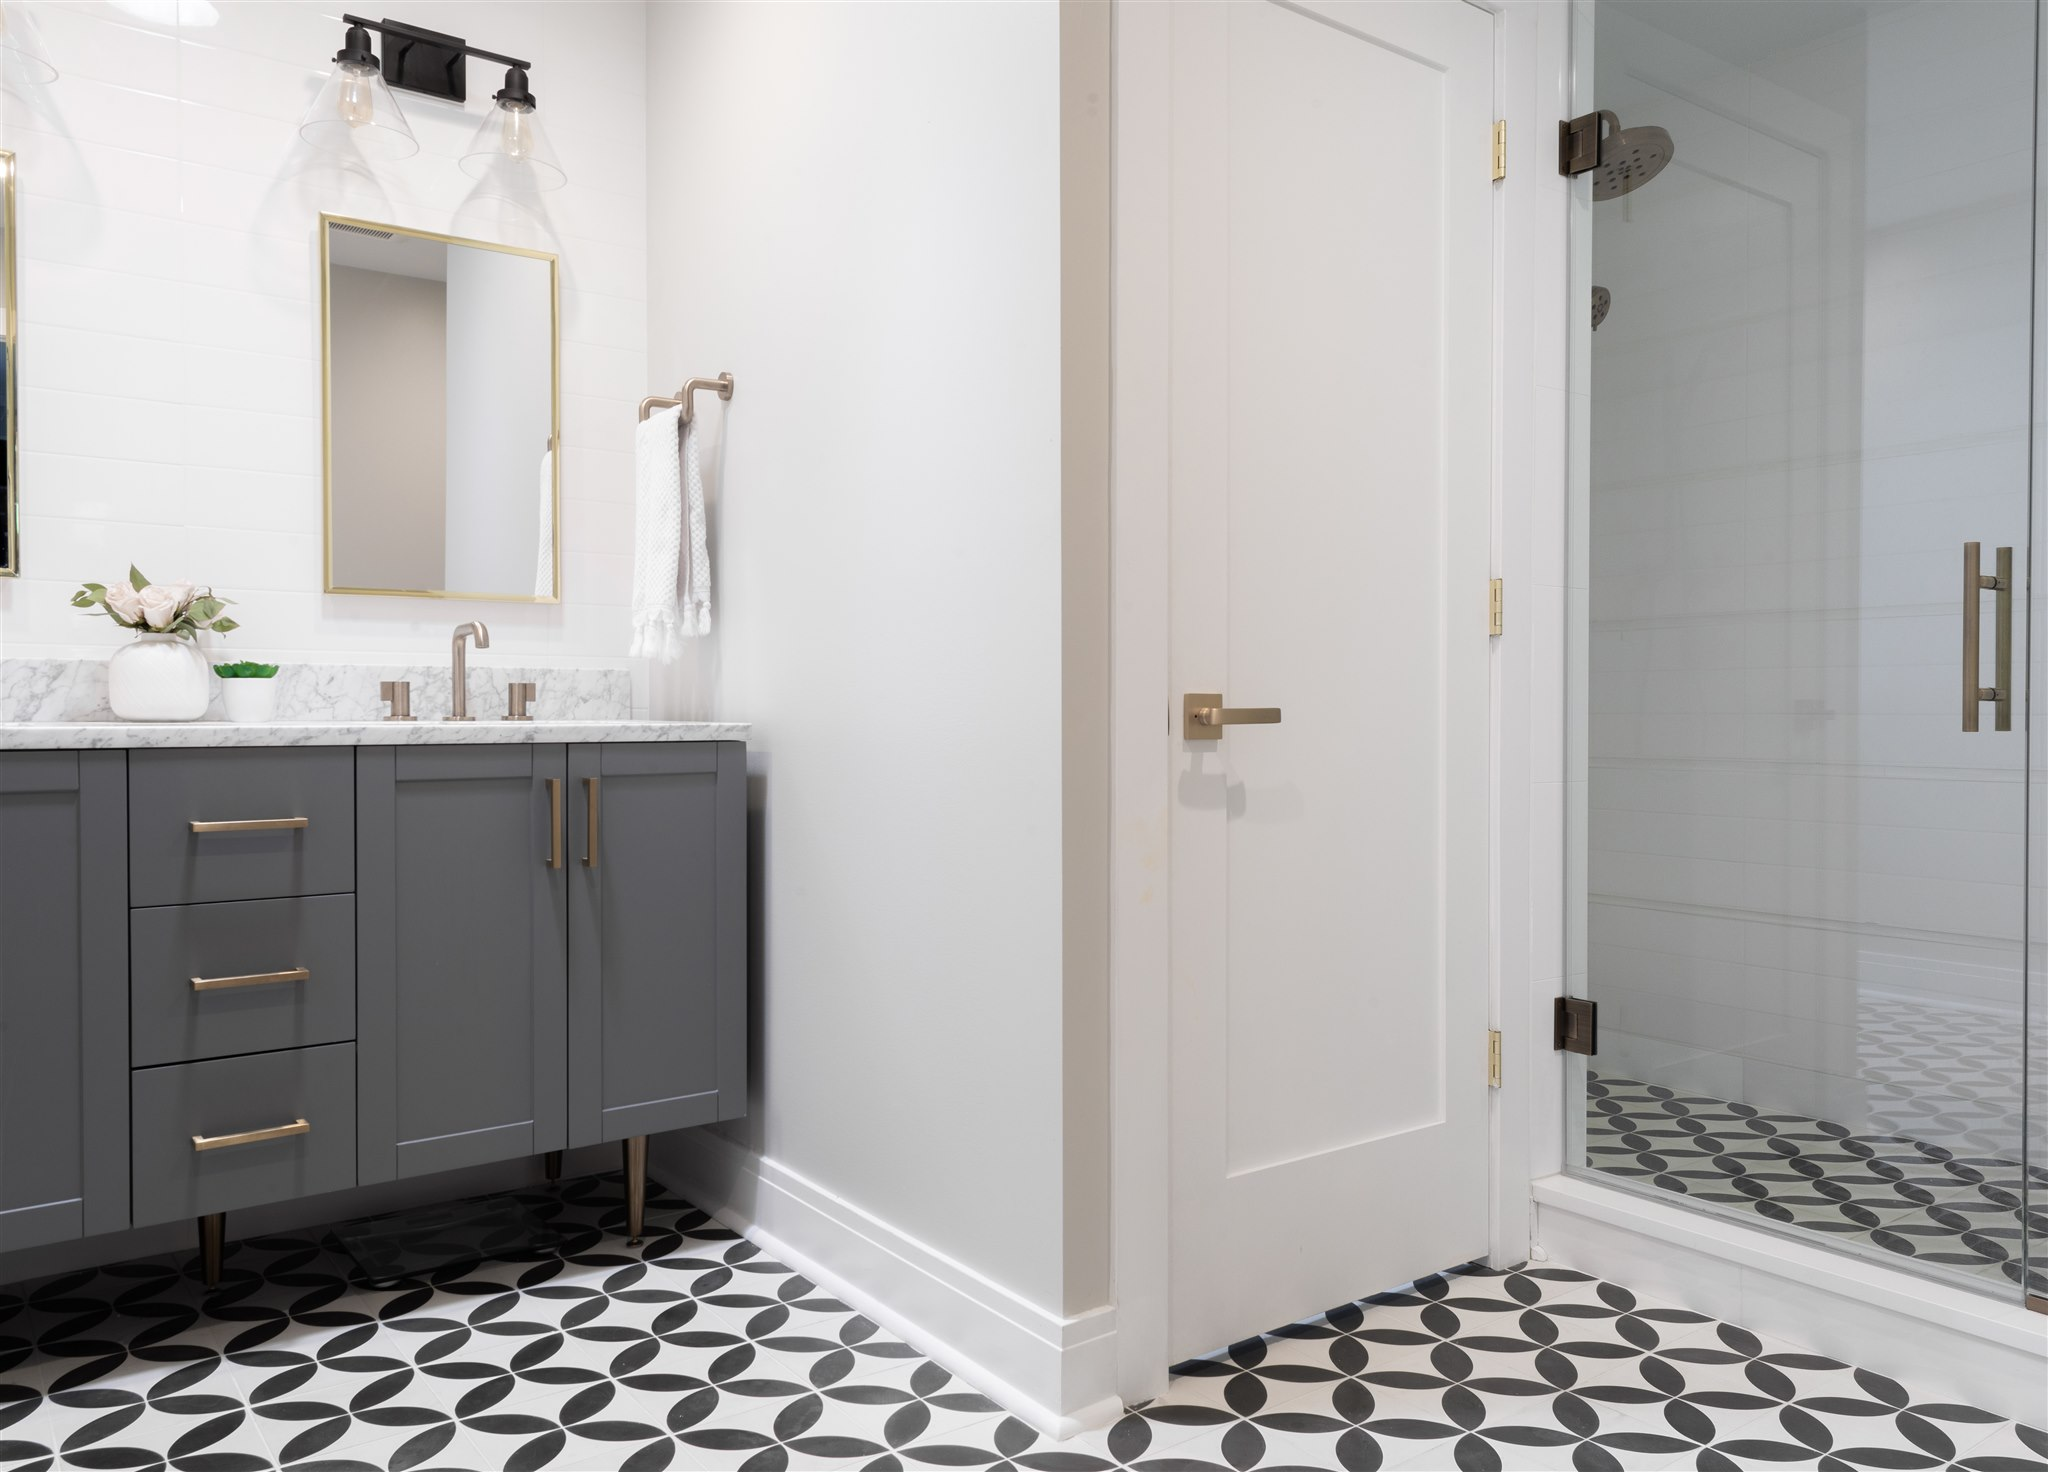 We pulled in some fun, cheerful patterns in this space to add contrast to the otherwise light and soft bathroom. The gray and marble vanity gets warmed up with brass accents, which we carried throughout the rest of the bathroom in plumbing fixtures and door hardware.